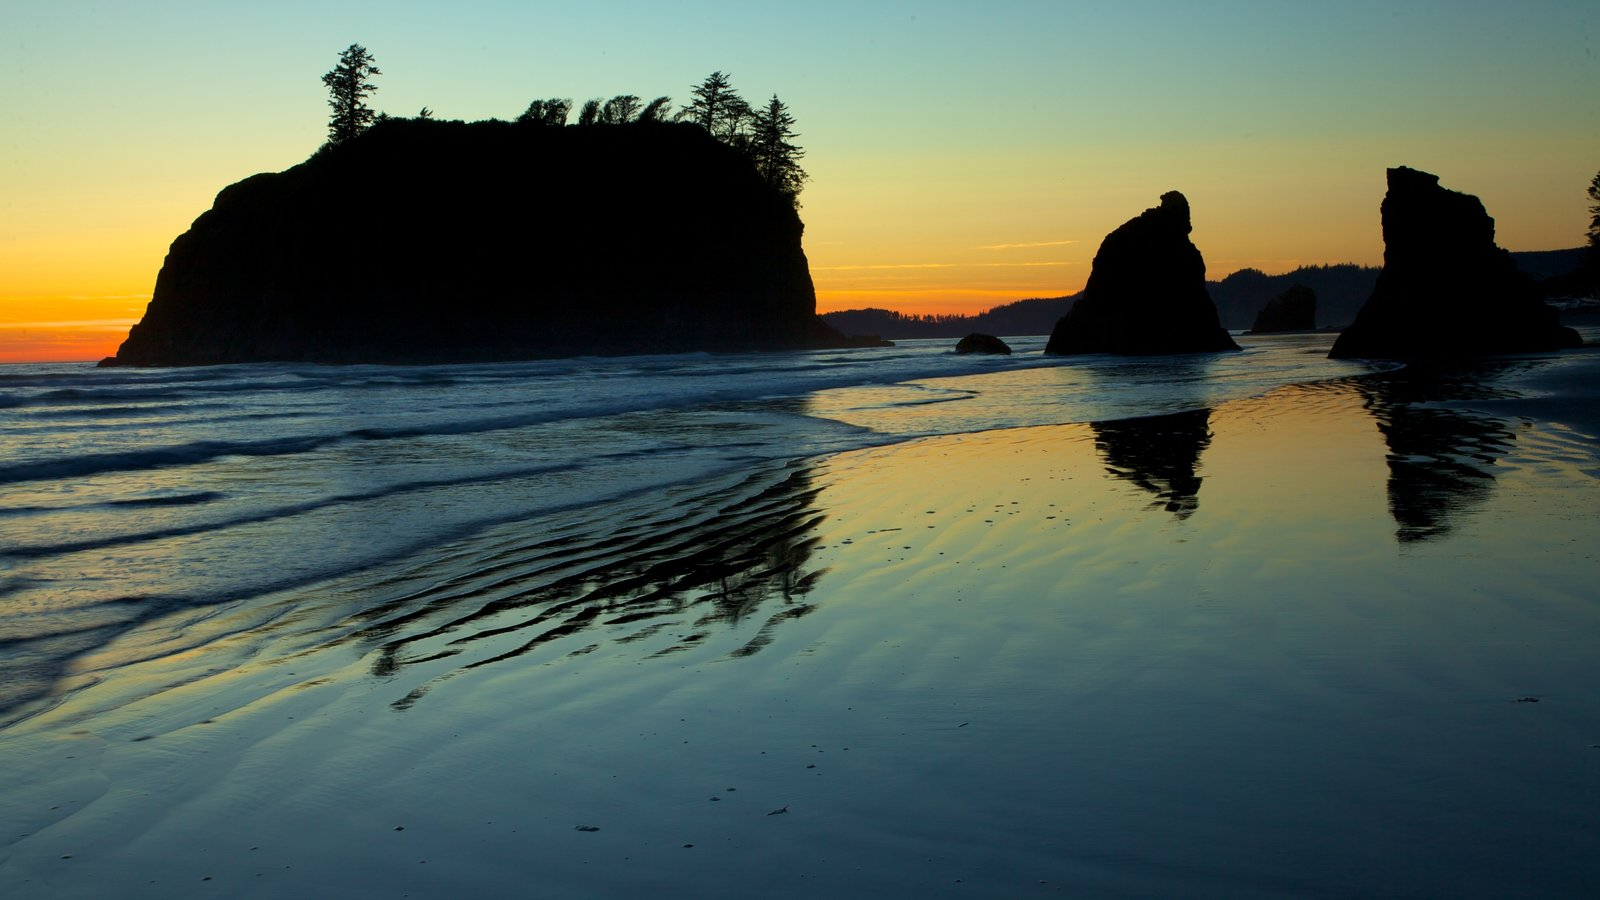 Washington Coast which includes a sandy beach, a sunset and landscape views